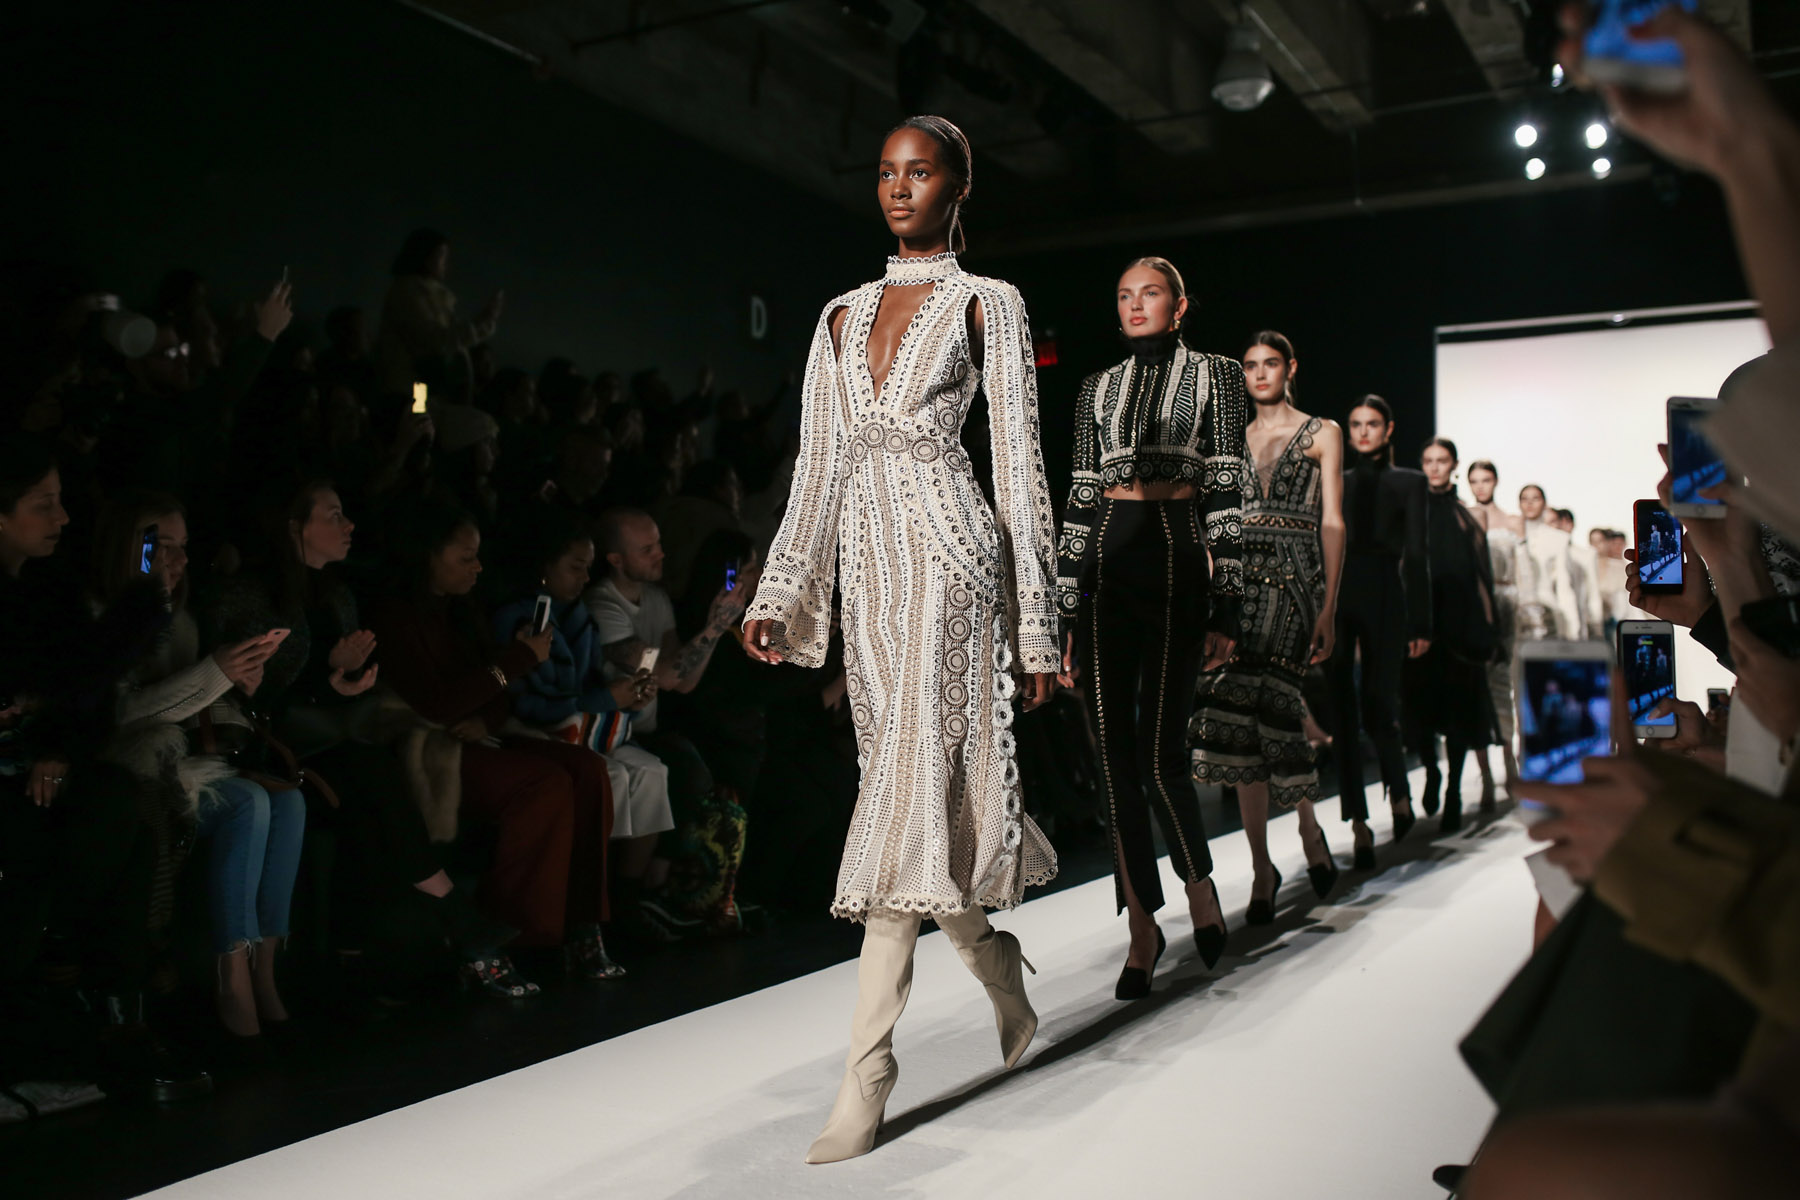 6 Crucial Tips for Surviving Fashion Week // NotJessFashion.com // Jonathan Simkhai NYFW HighLights 2017 Winter